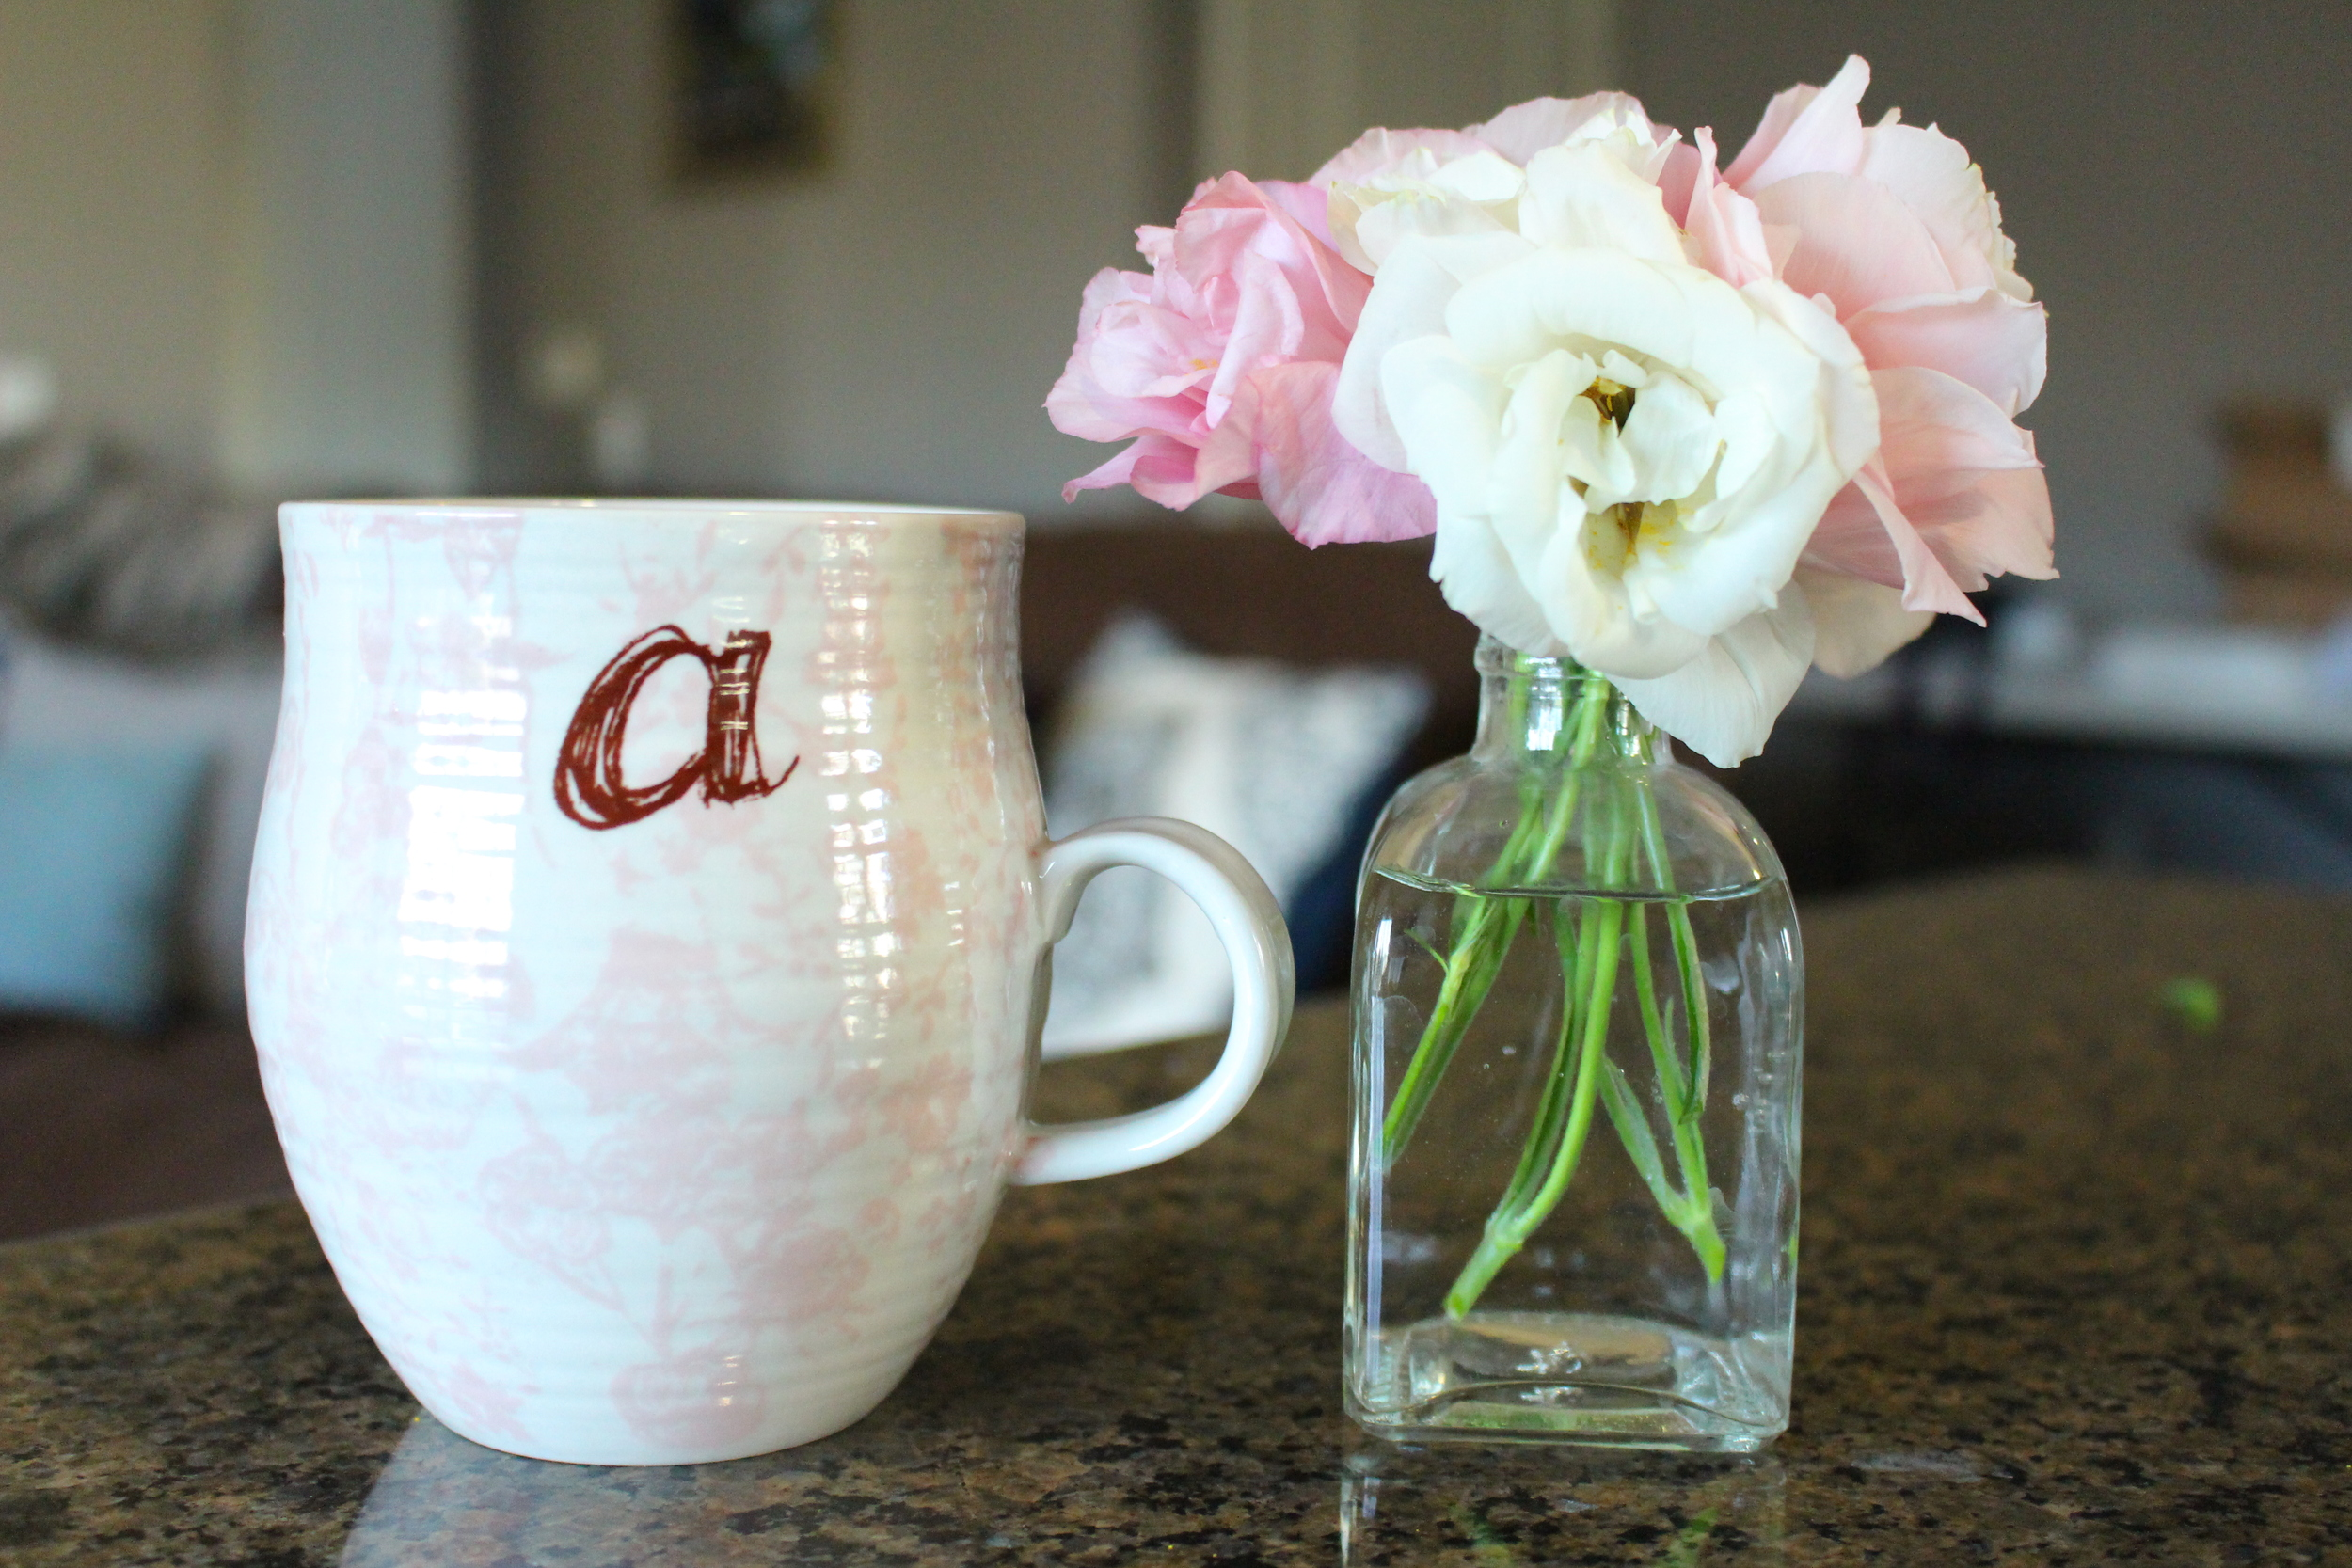 The most beautiful coffee mugs from Anthropologie, that just so happen to match my flowers.